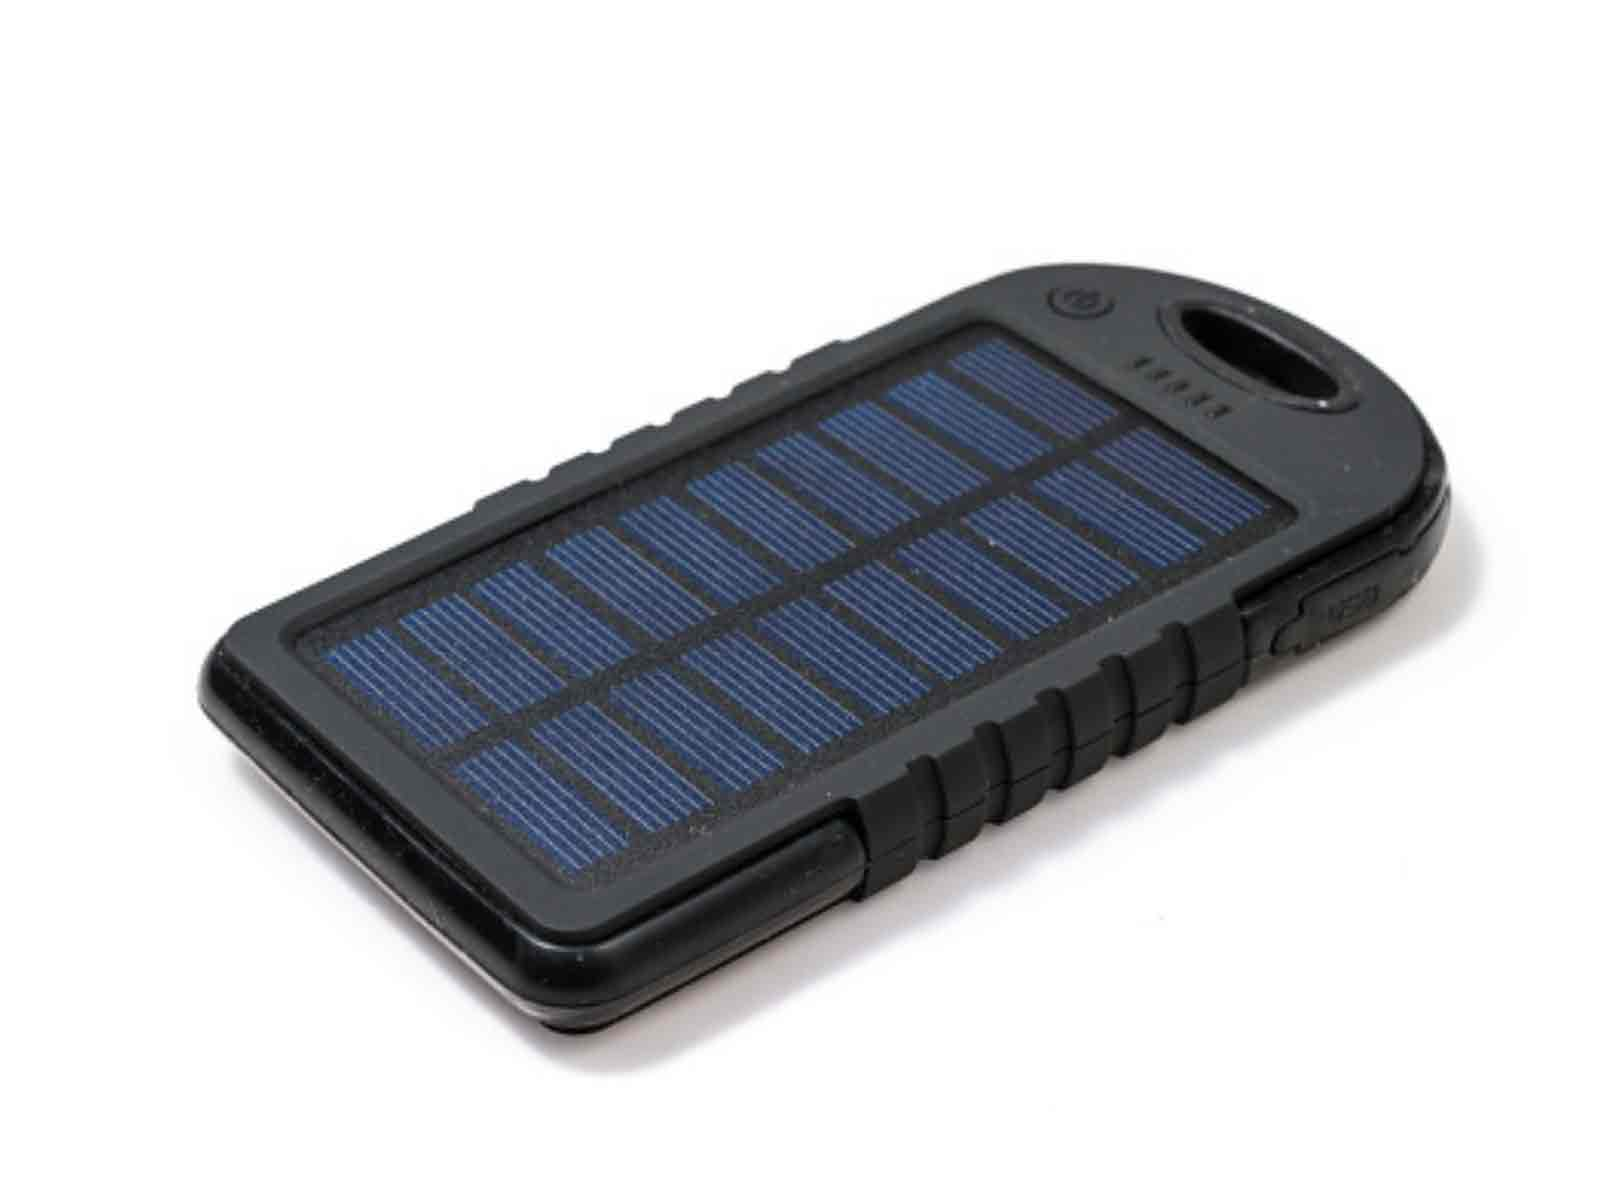 Sizing Solar Battery Chargers for Charging Batteries